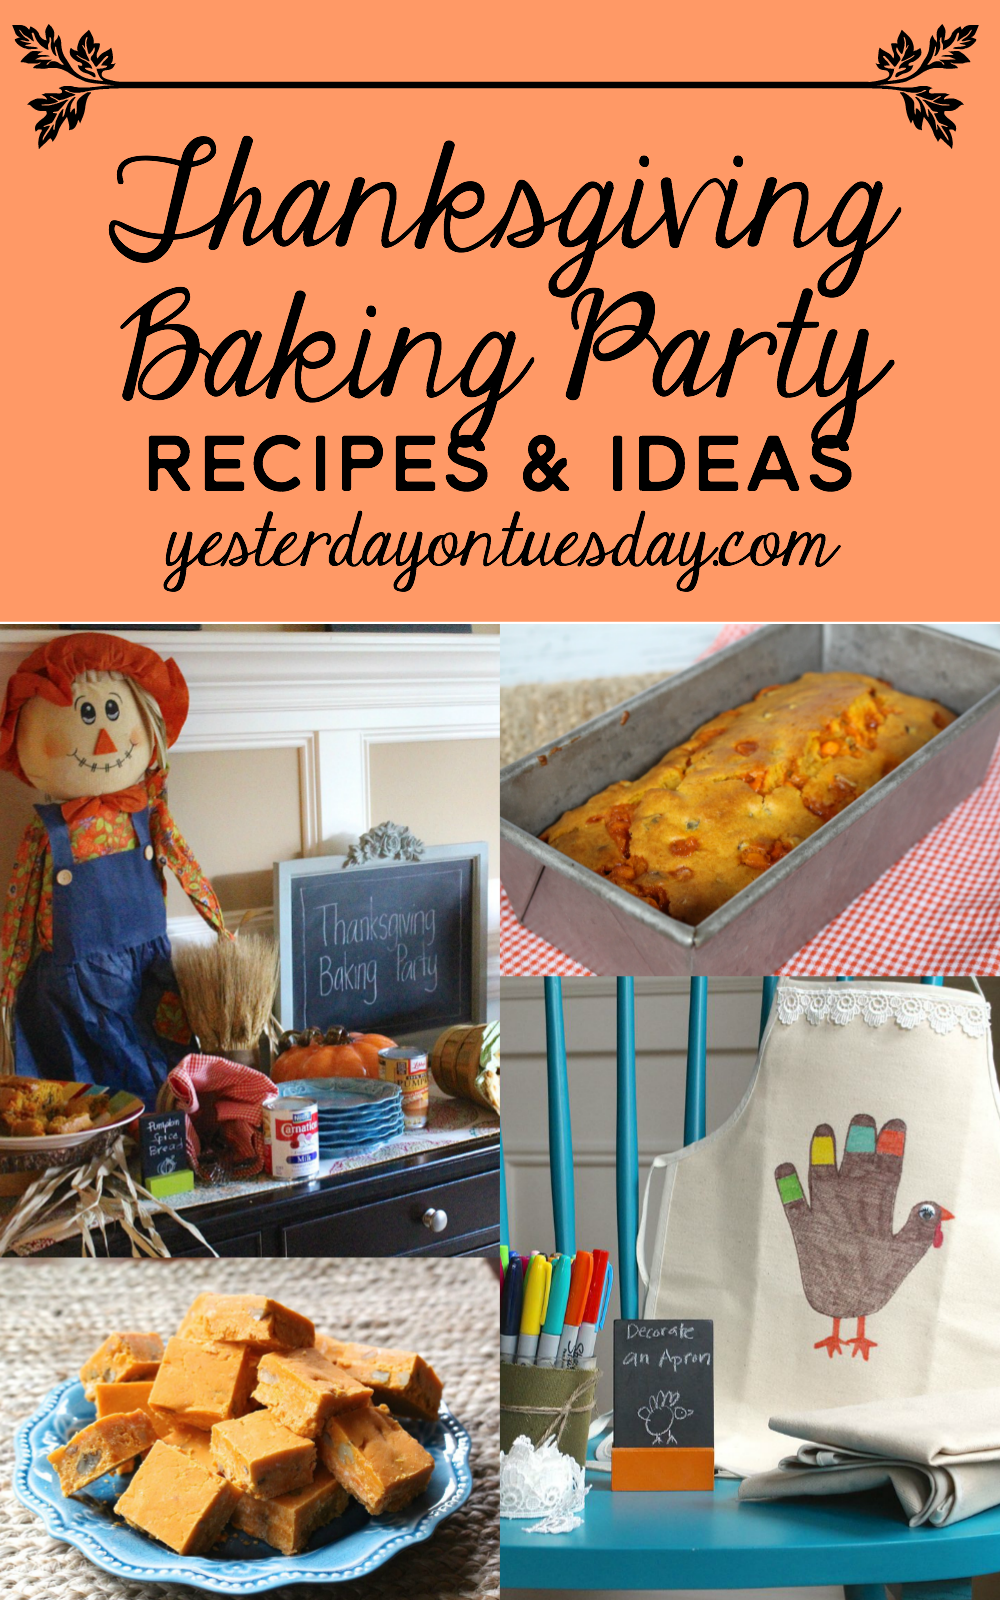 Thanksgiving Baking Party